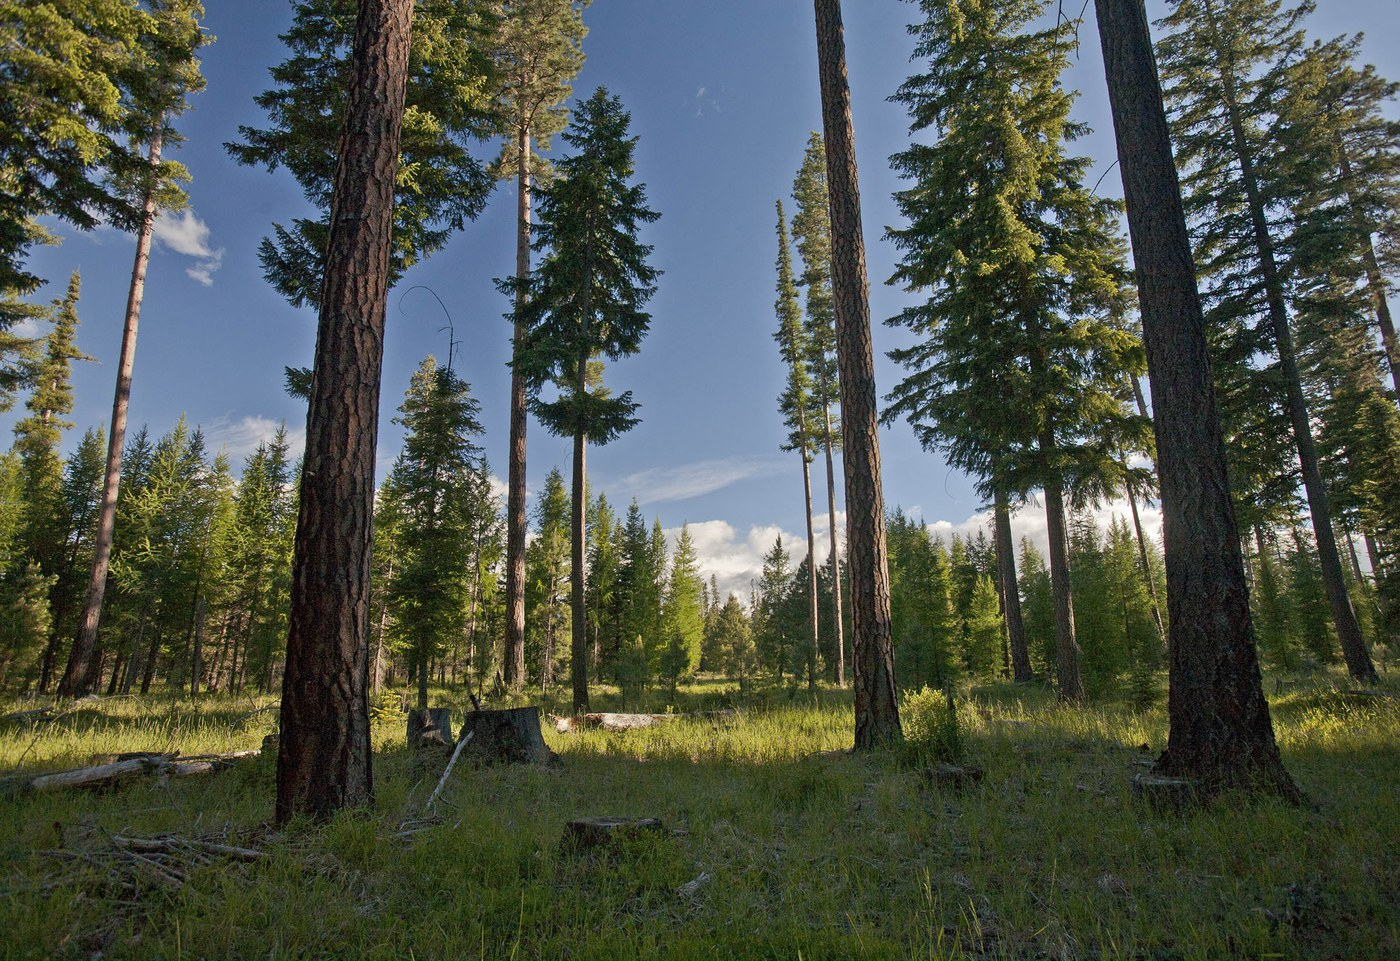 Ponderosa pines stand tall at the Metolius Preserve. Photo: Jay Mather.